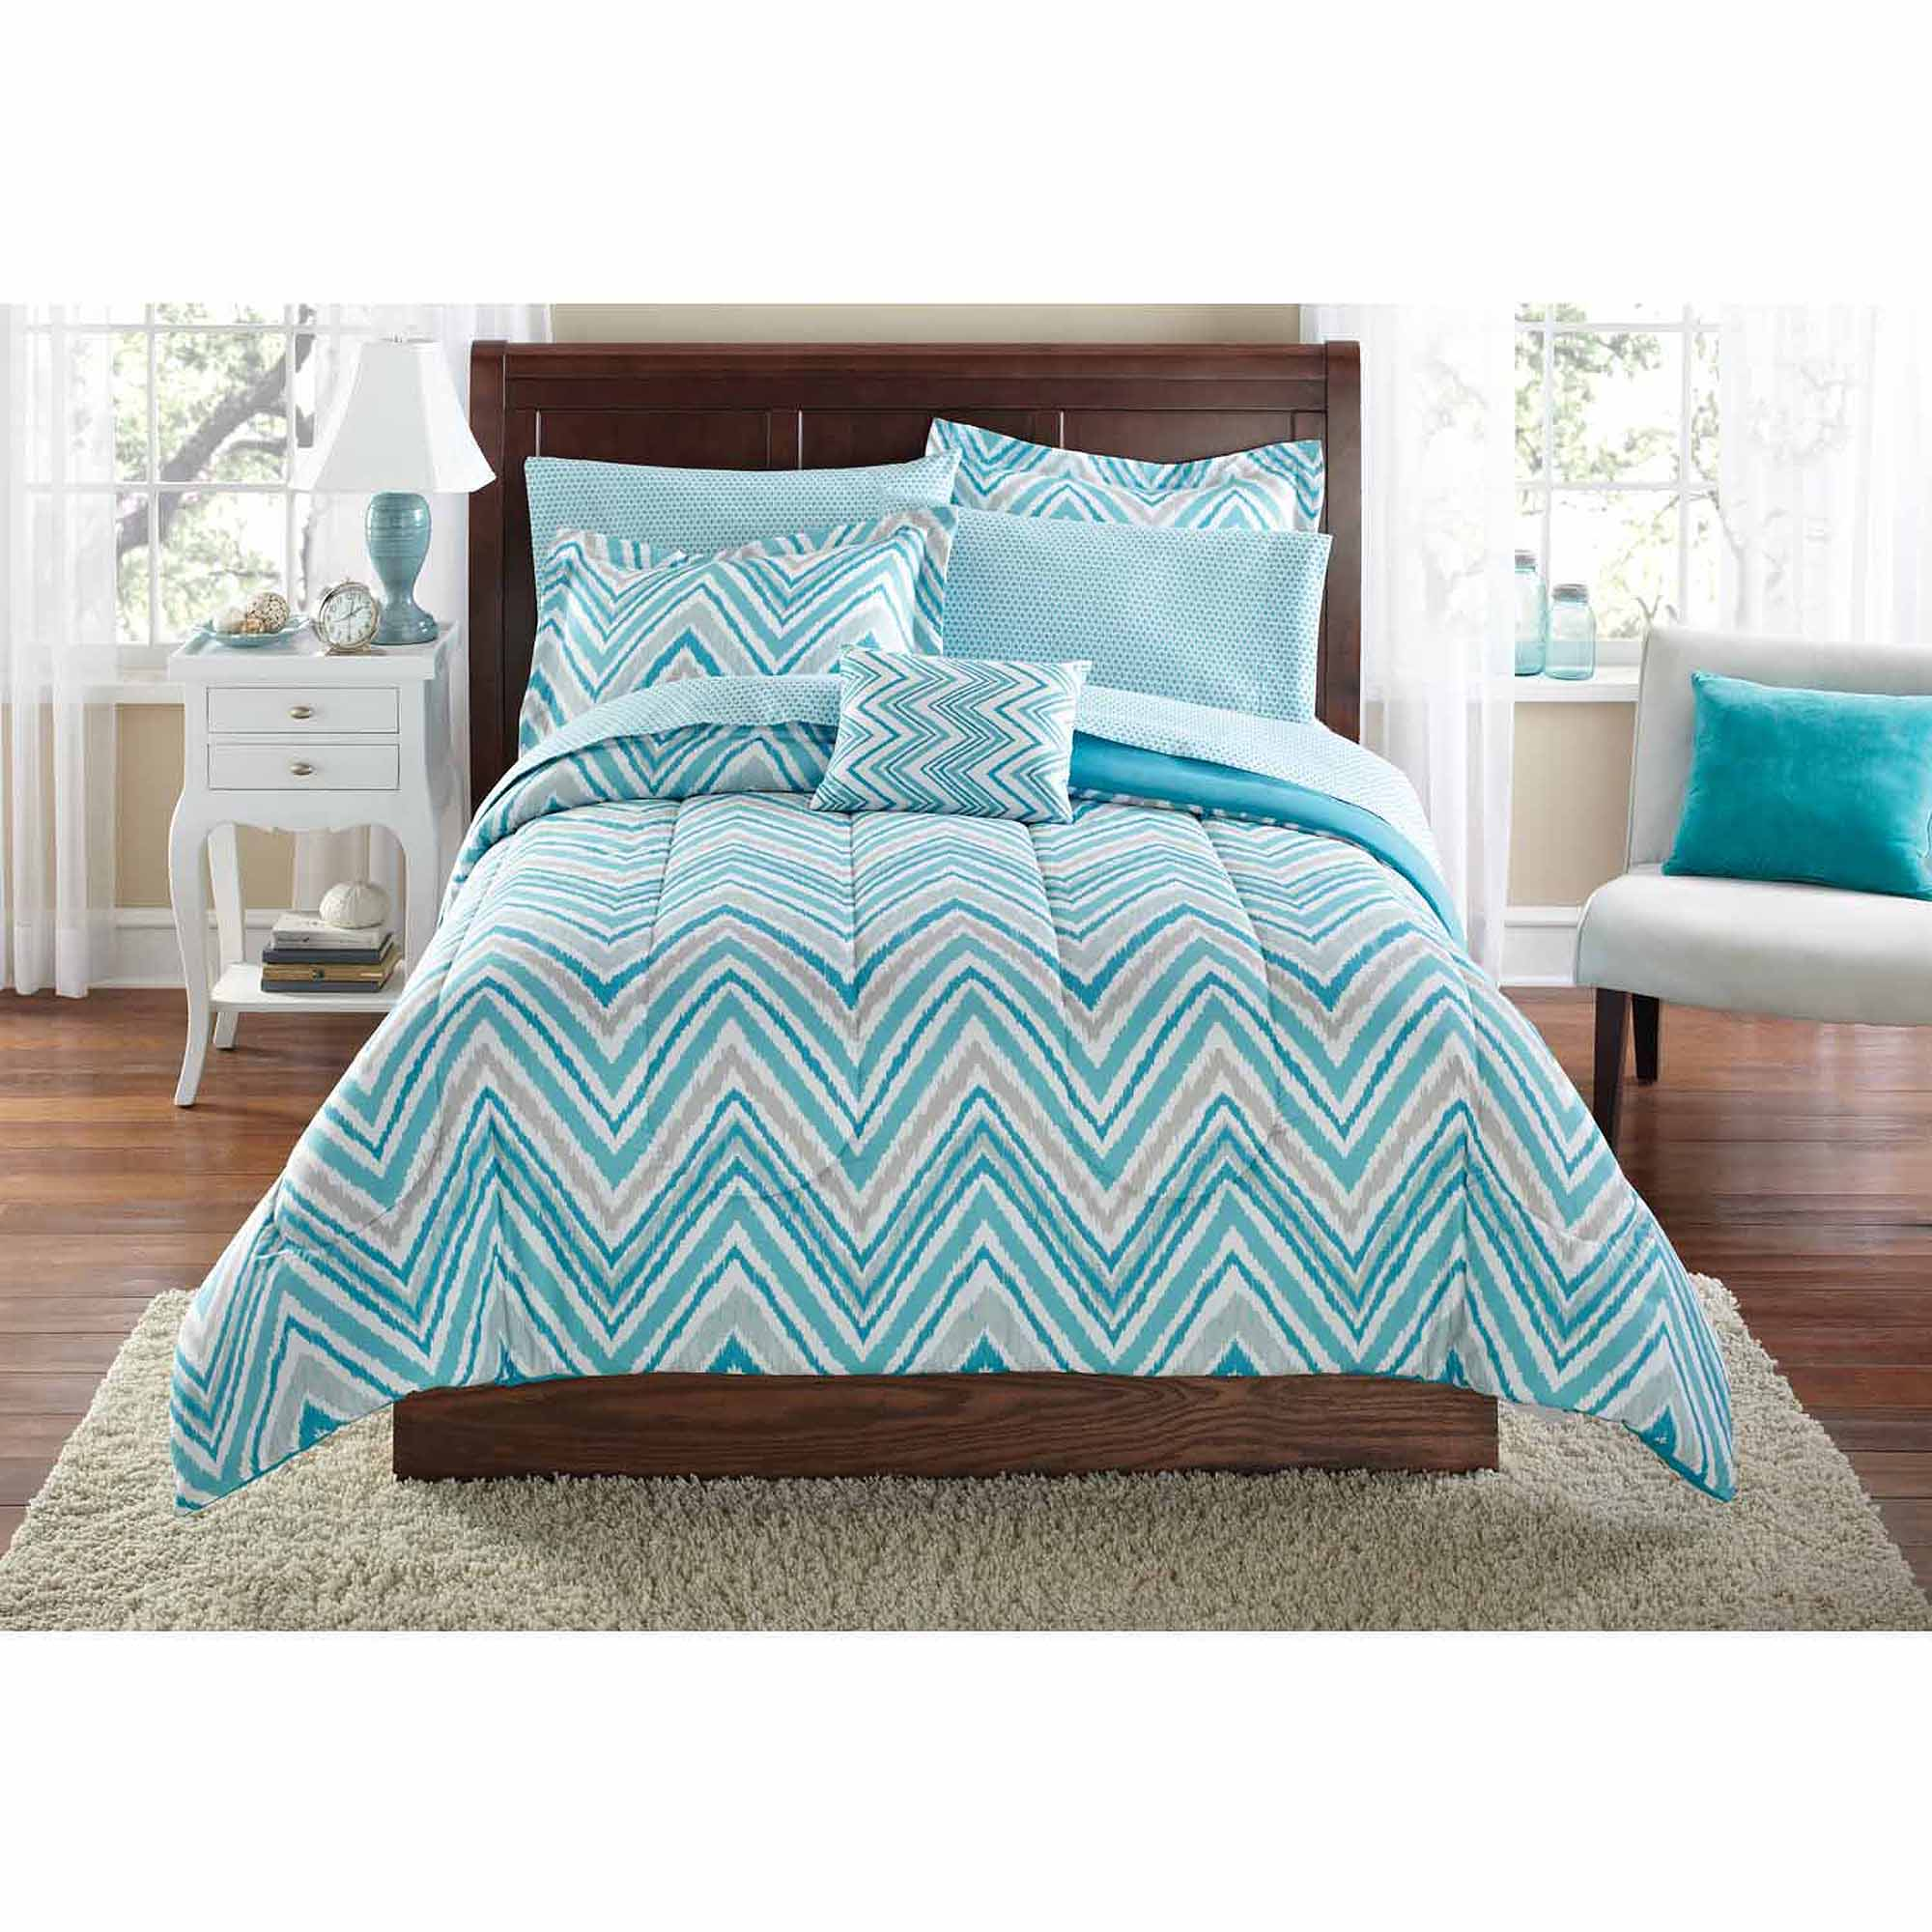 Bedding sets turquoise - Mainstays Watercolor Chevron Bed In A Bag Coordinated Bedding Set Walmart Com